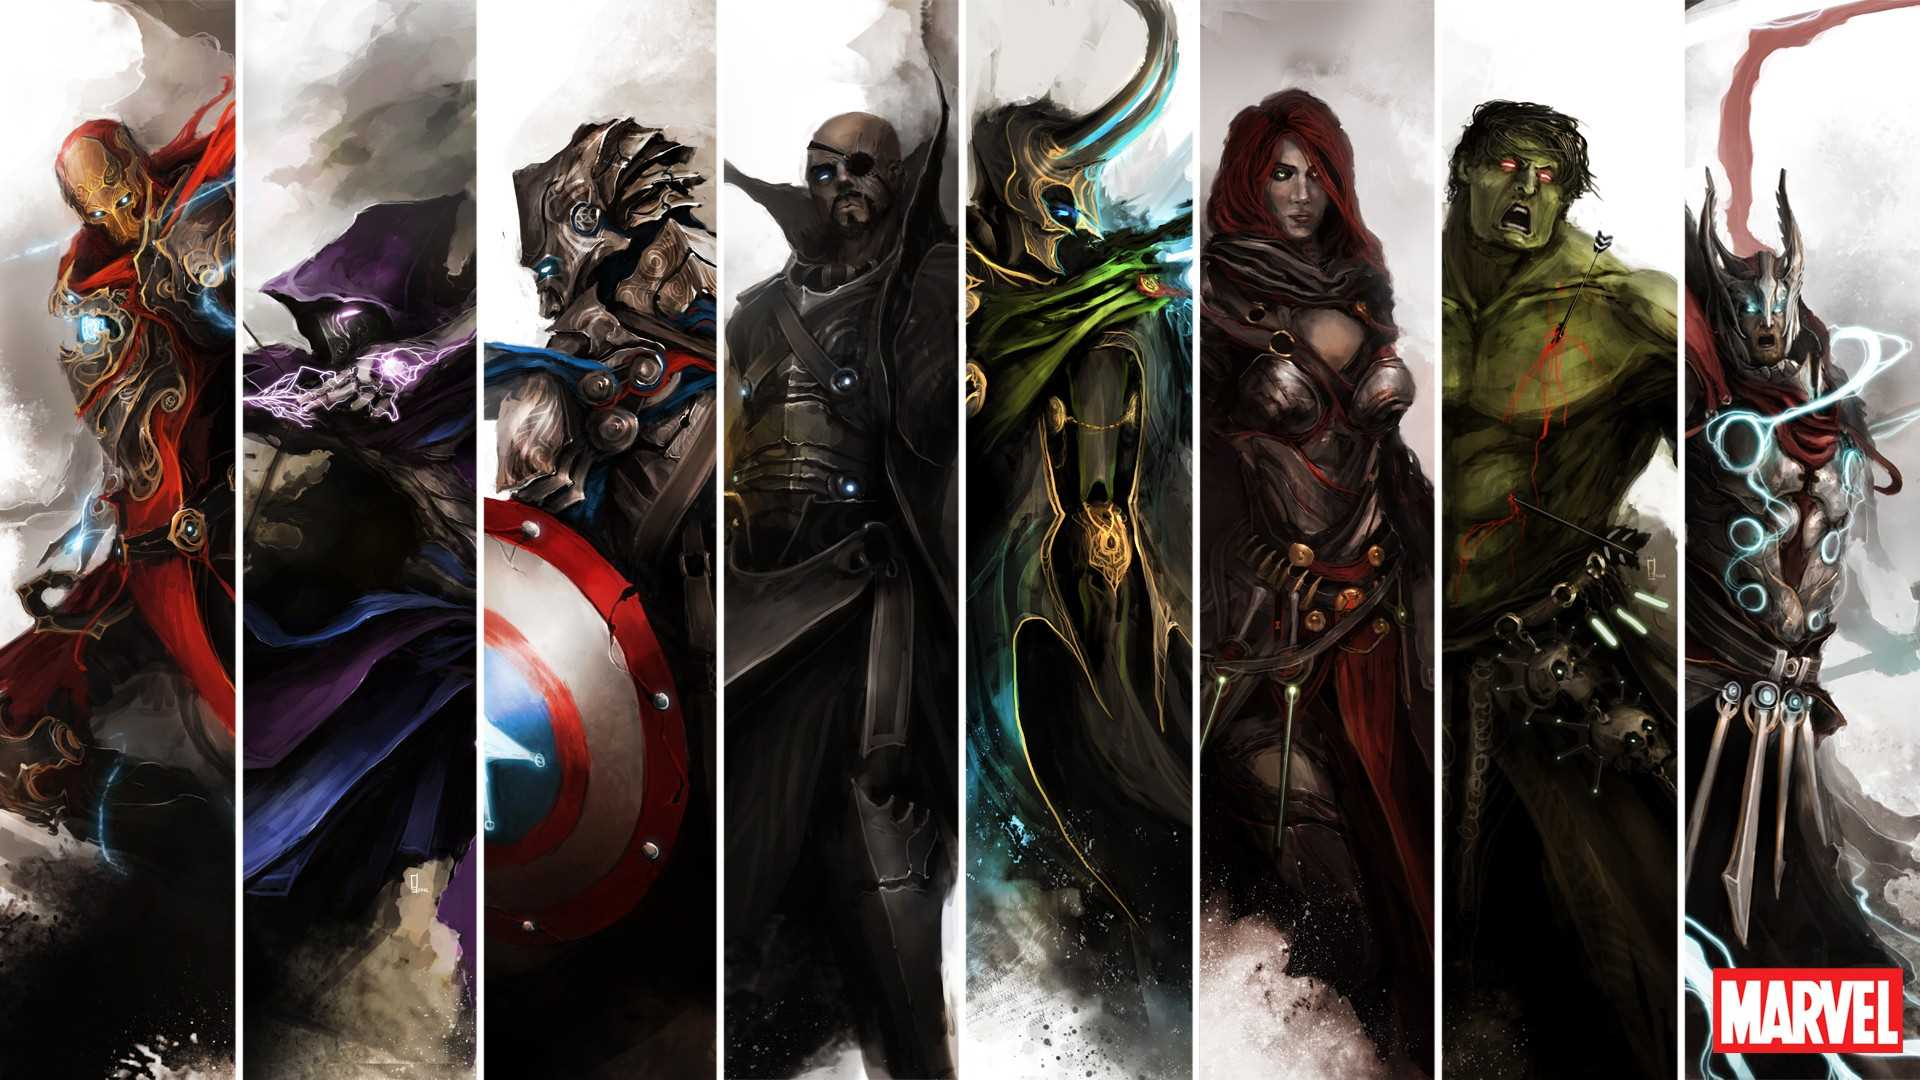 3d Live Wallpaper For Windows Xp Free Download Download Best Marvel Wallpaper Gallery